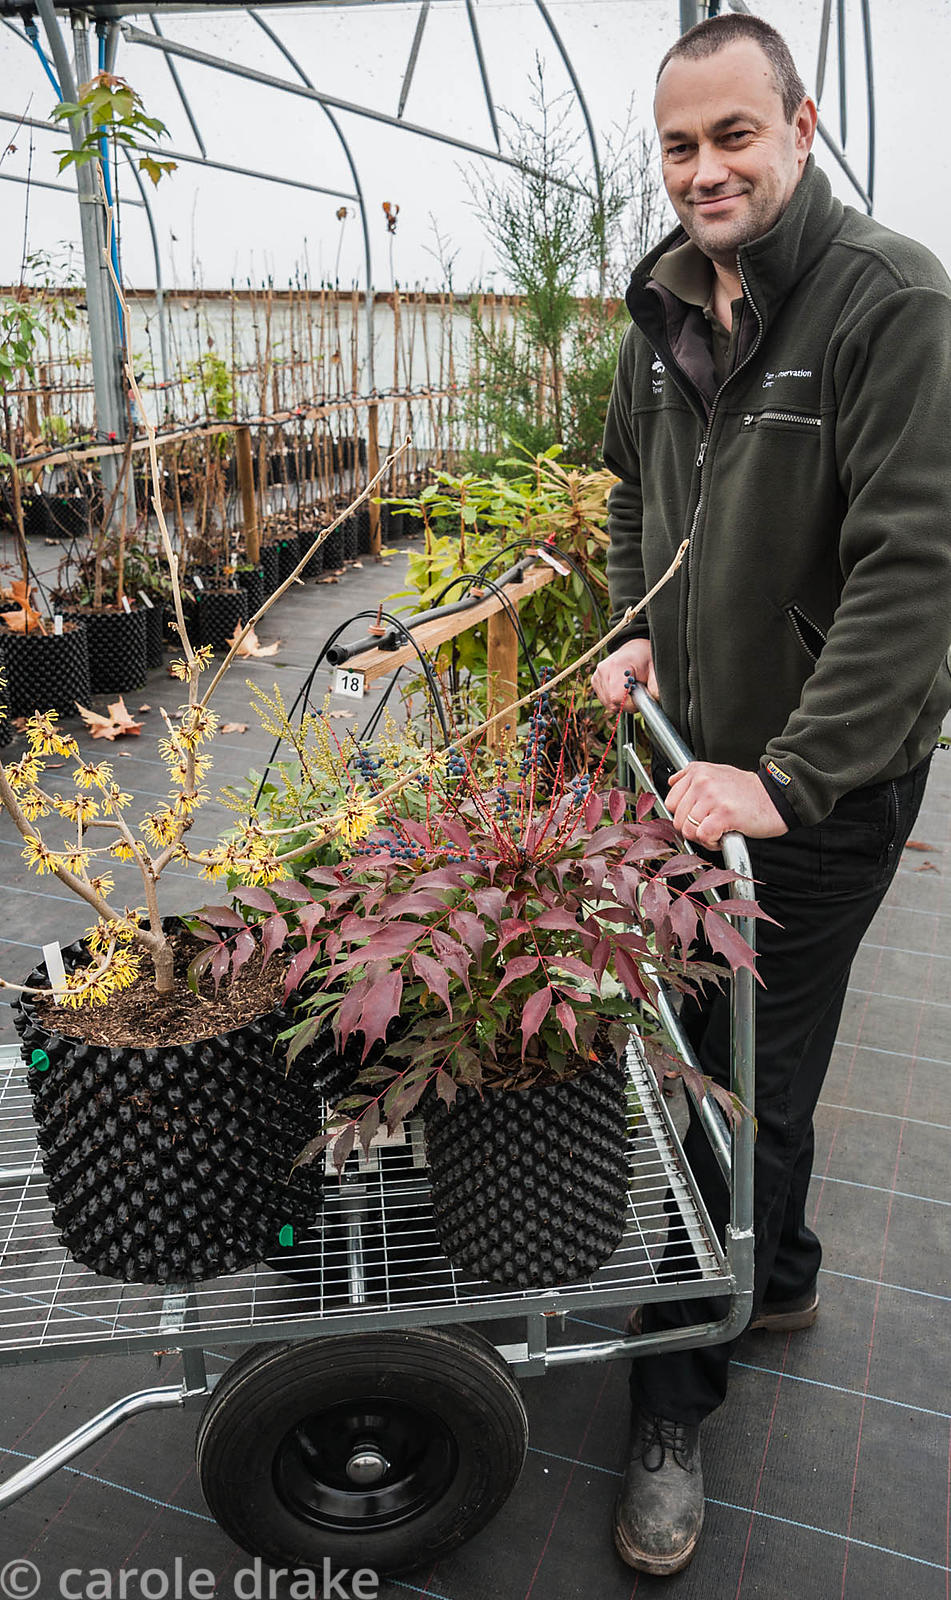 Chris Trimmer, National Trust Plant Conservation Manager, Devon, UK with trolley of shrubs including Hamamelis mollis 'Wisley...